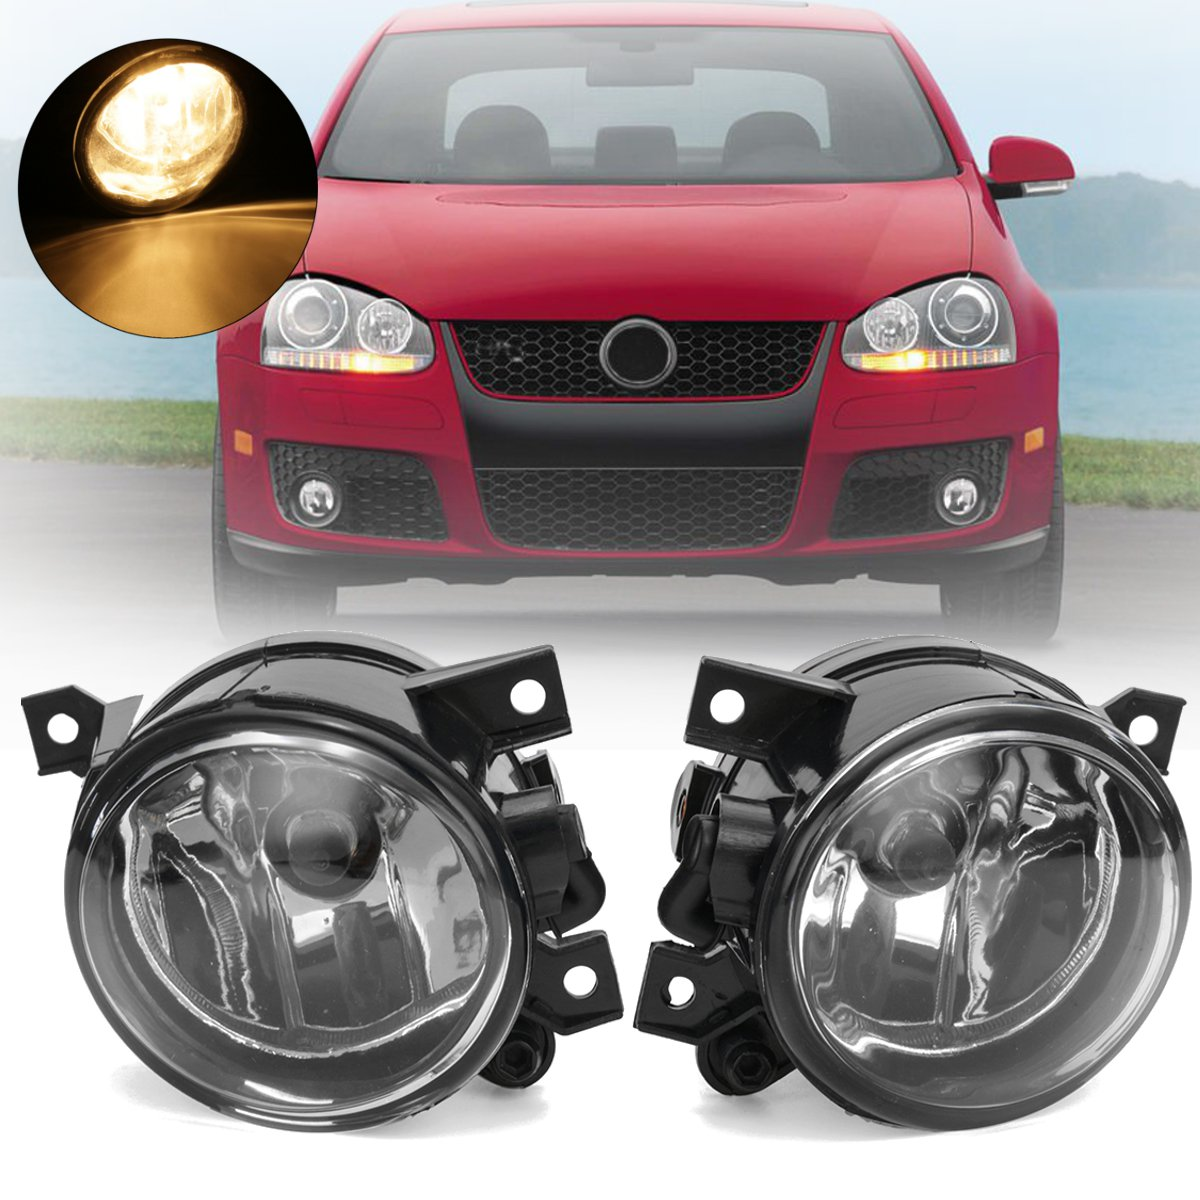 Left/Right Side Amber Car Bumper Fog Light Lamp w/ Bulb For VW Polo/Golf/Caddy/EOS/Tiguan/CC 2003-2010 2011 2012 2013 2014 автокресло peg perego peg perego автокресло viaggio 1 duo fix k rouge